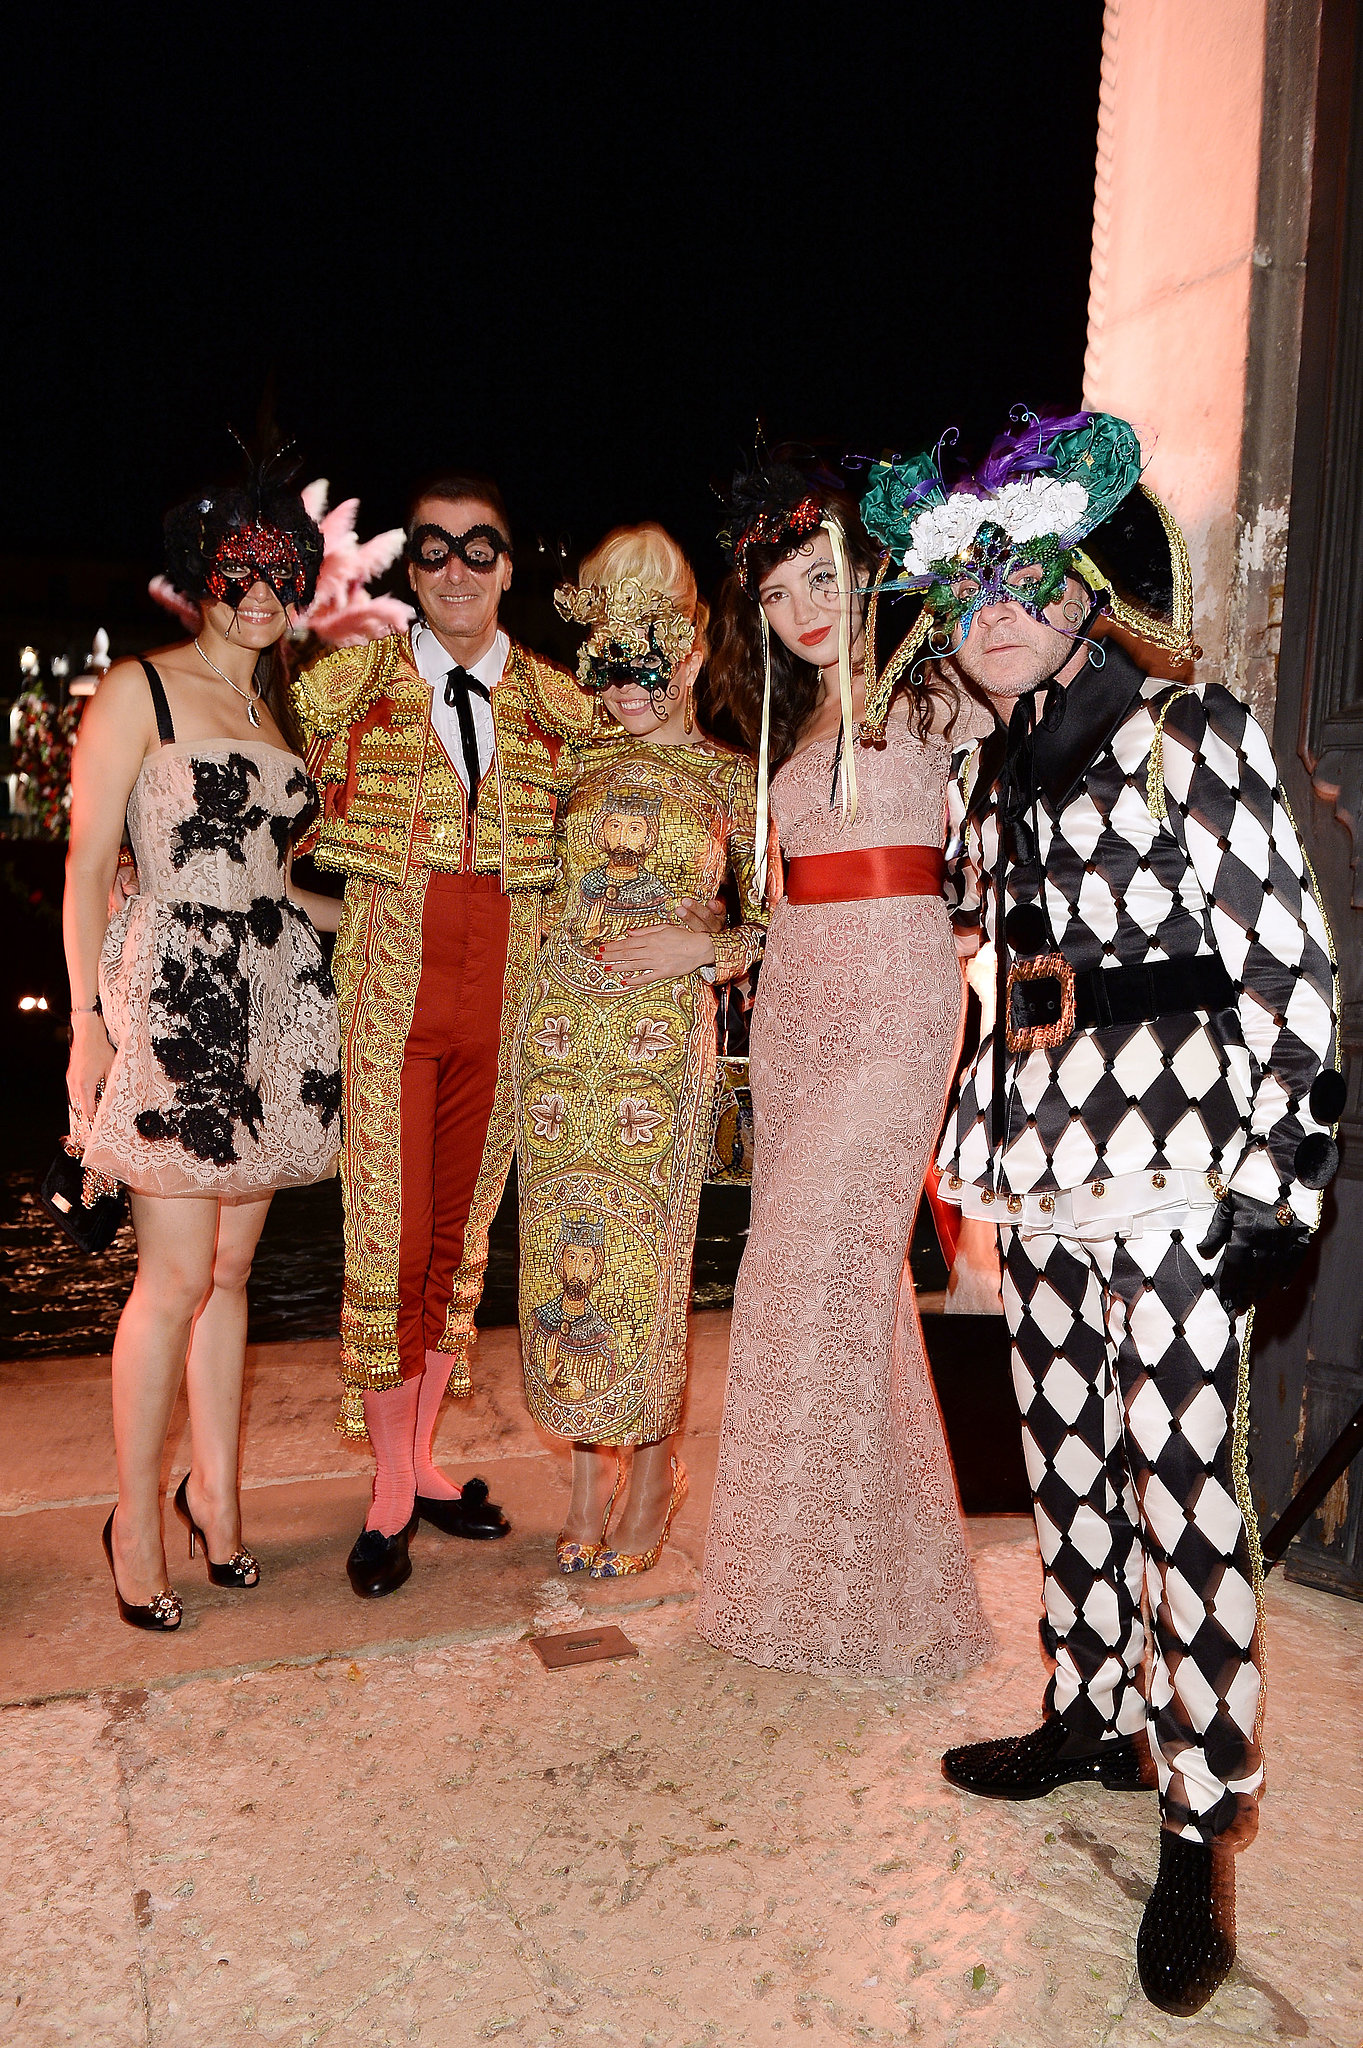 Caterina Murino, Stefano Gabbana, Paloma Faith, Daisy Lowe, and Domenico Dolce embraced the party spirit and on